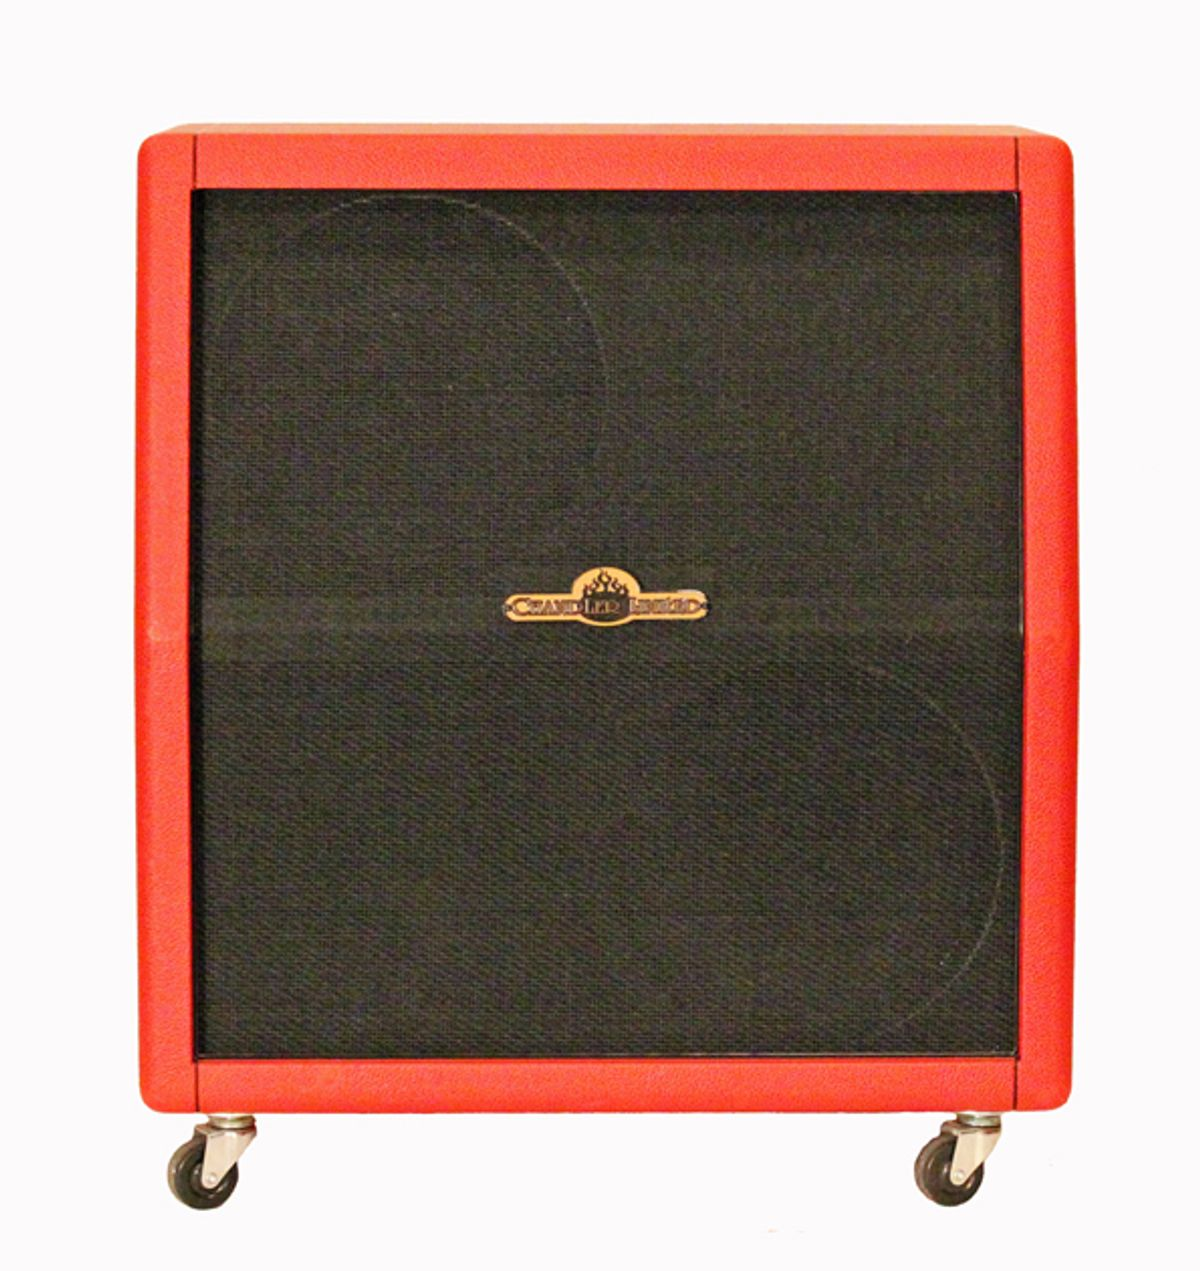 Chandler Limited Releases New Speaker Cabinets